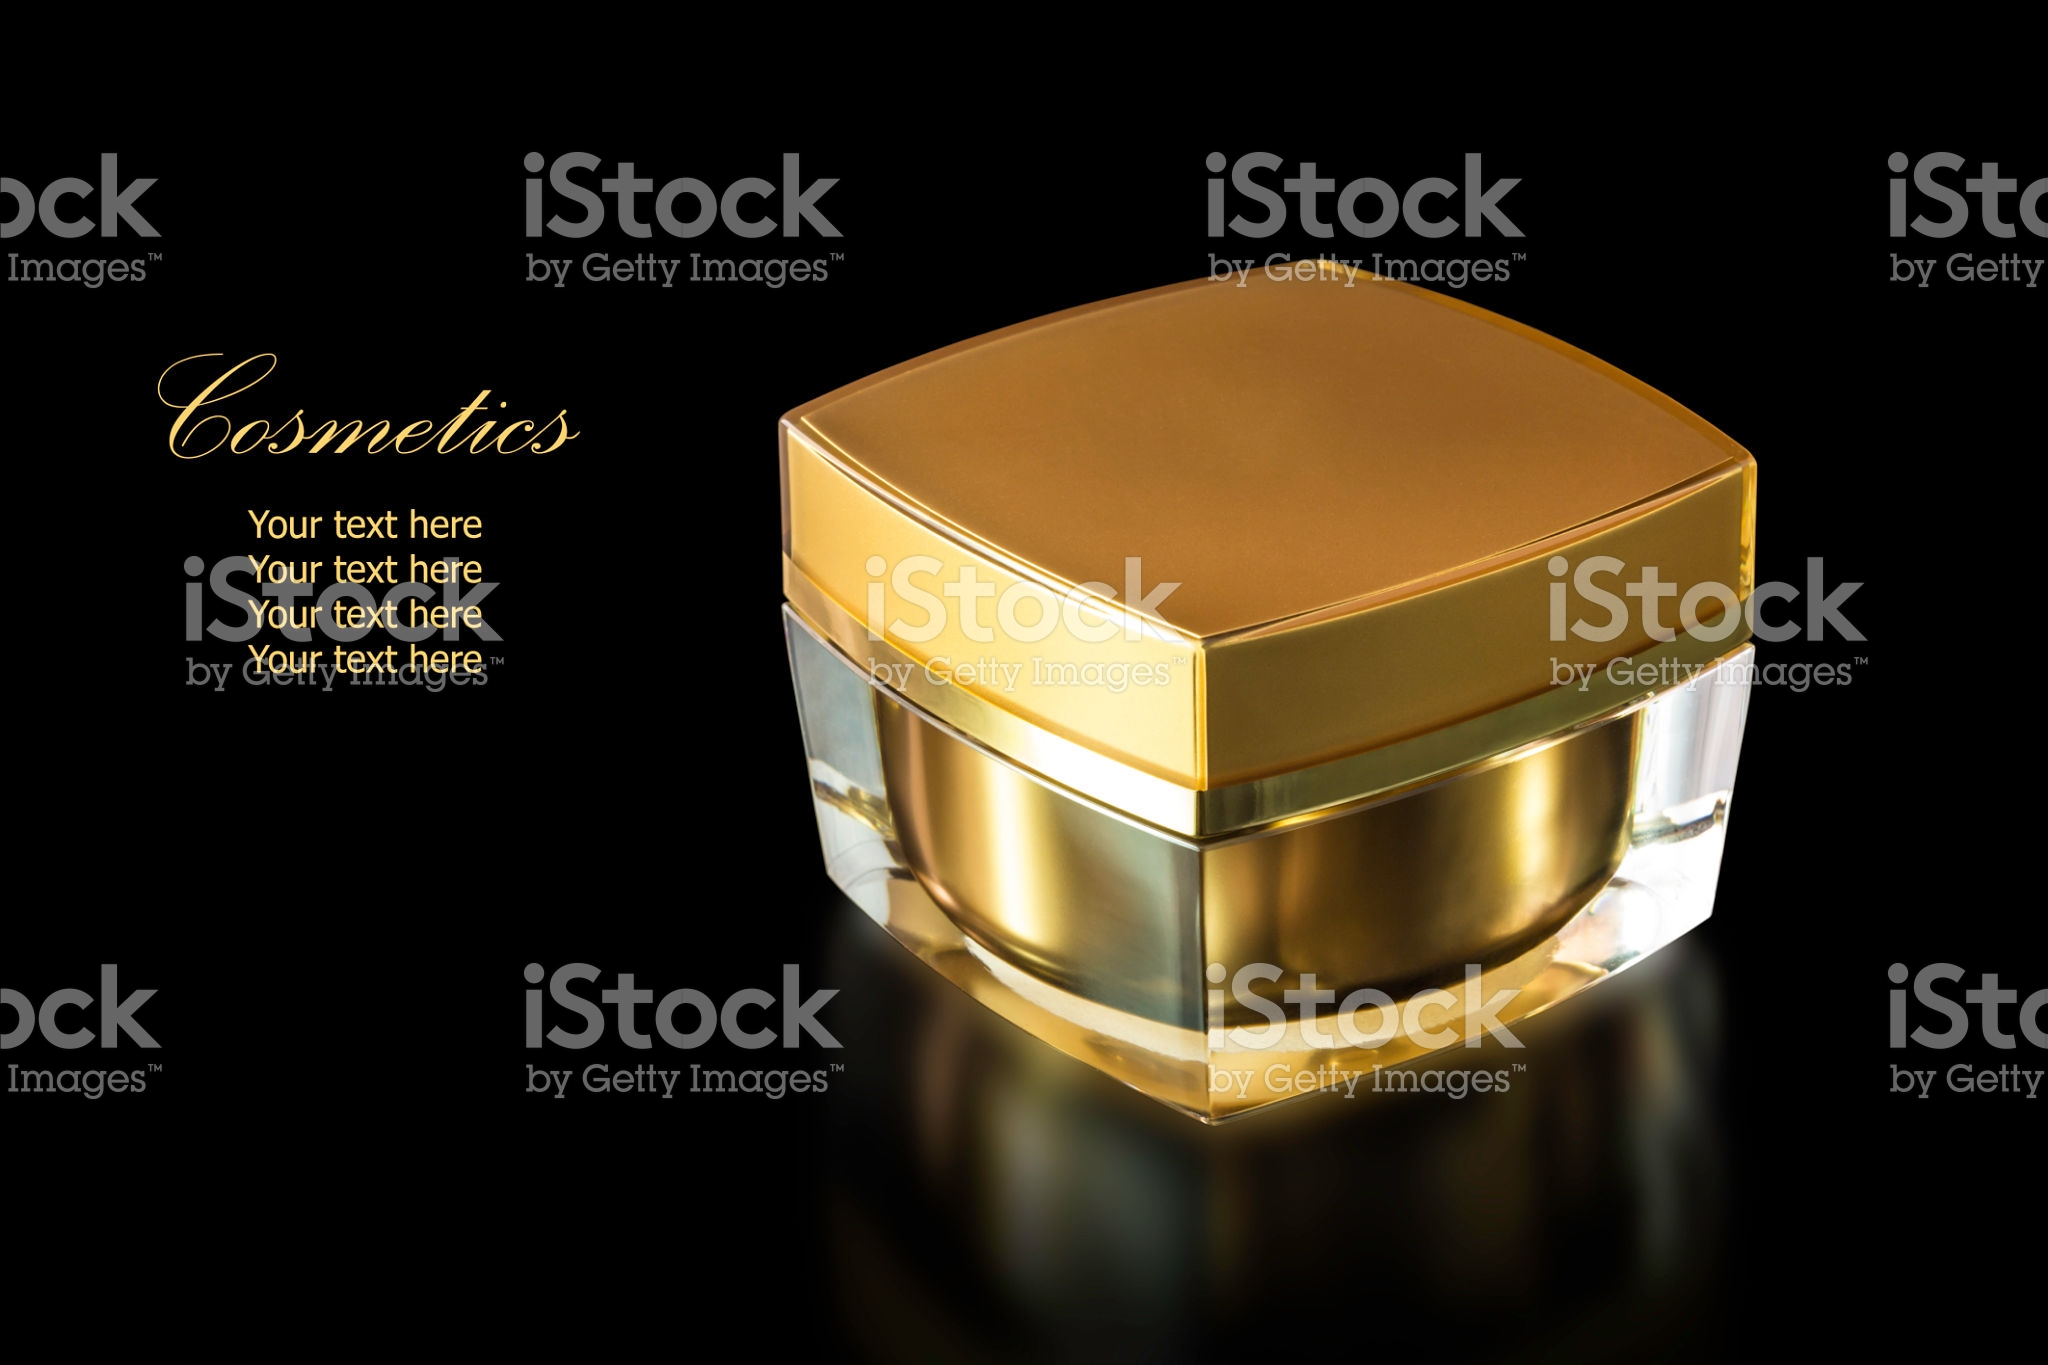 Gold colored blank cosmetic-container